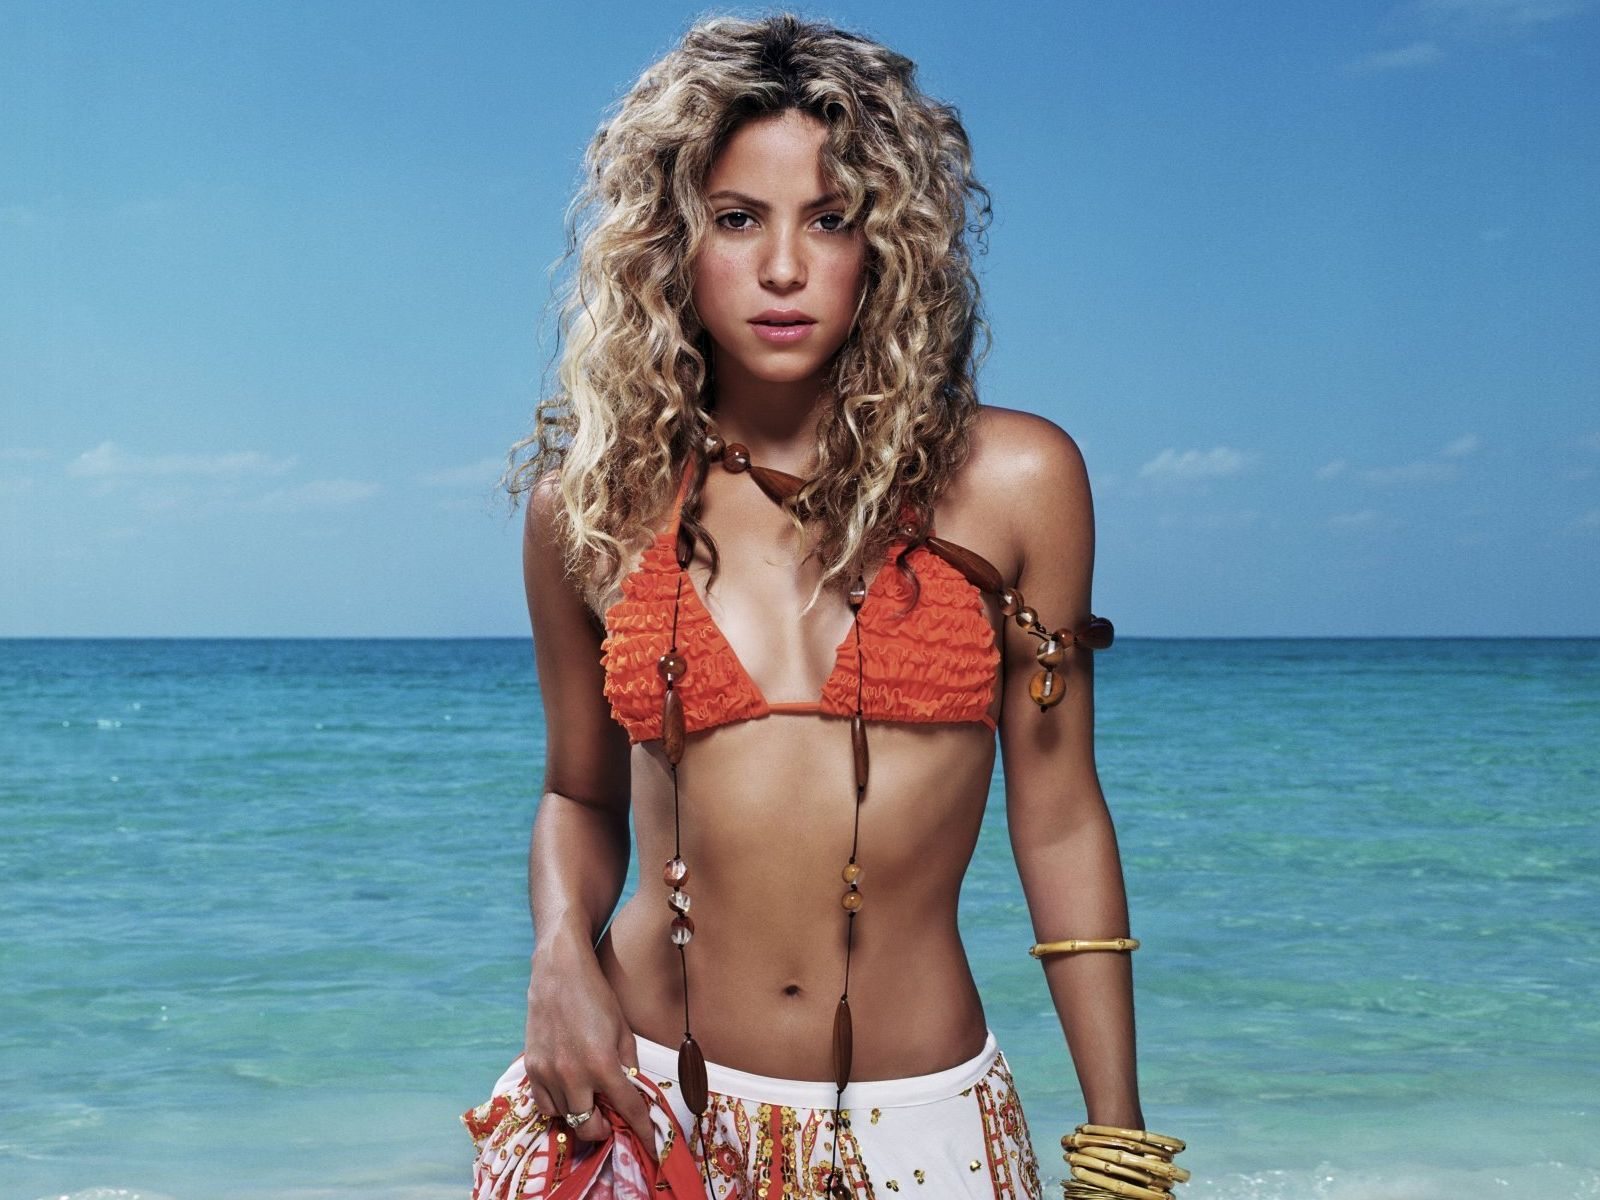 Understand you. Shakira hot bikini not